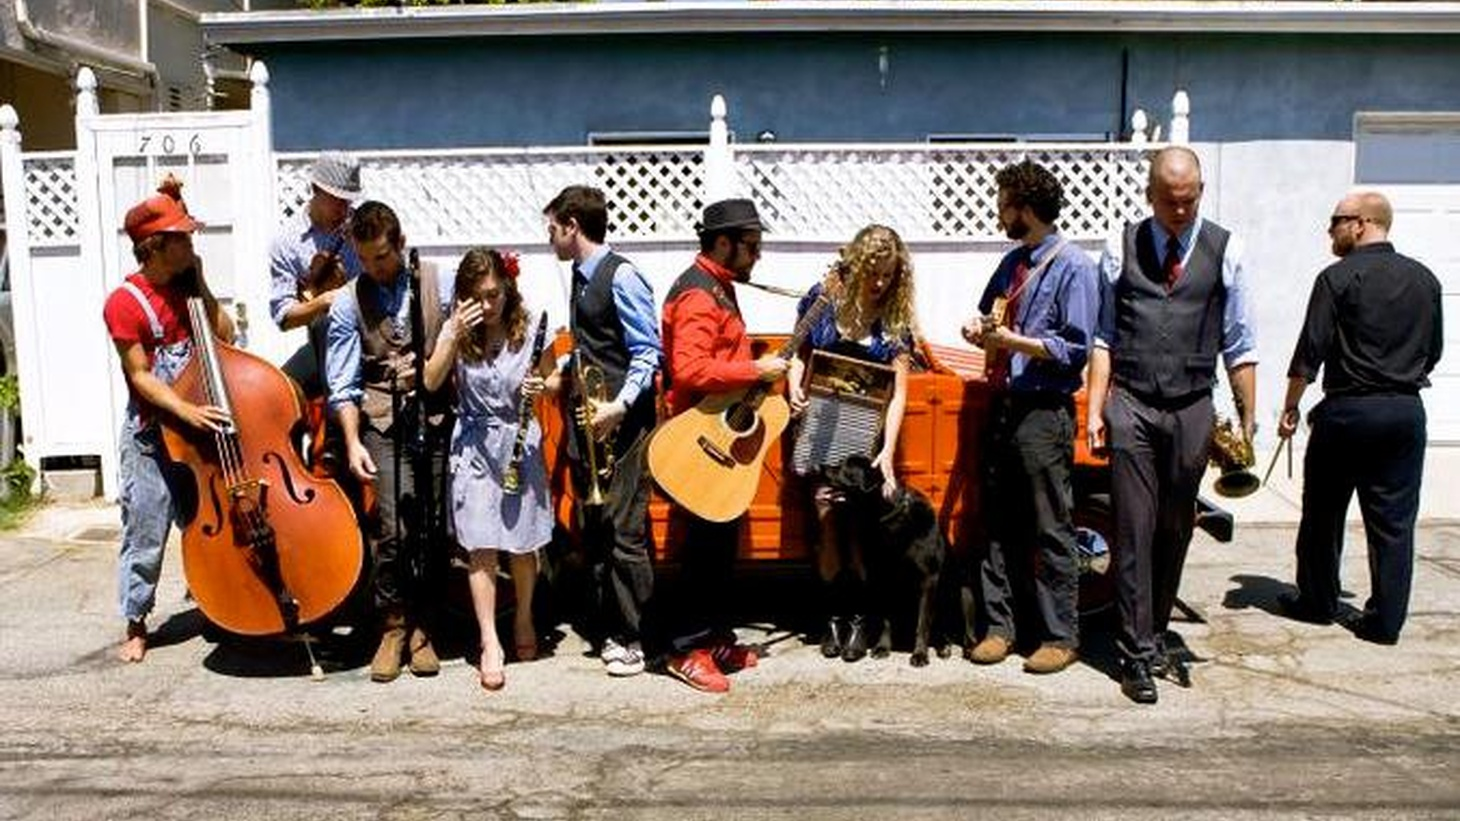 With KCRW's Halloween benefit event just around the corner, TTT features one of the featured bands. The Dustbowl Revival is a jug-band collective of raucous proportions